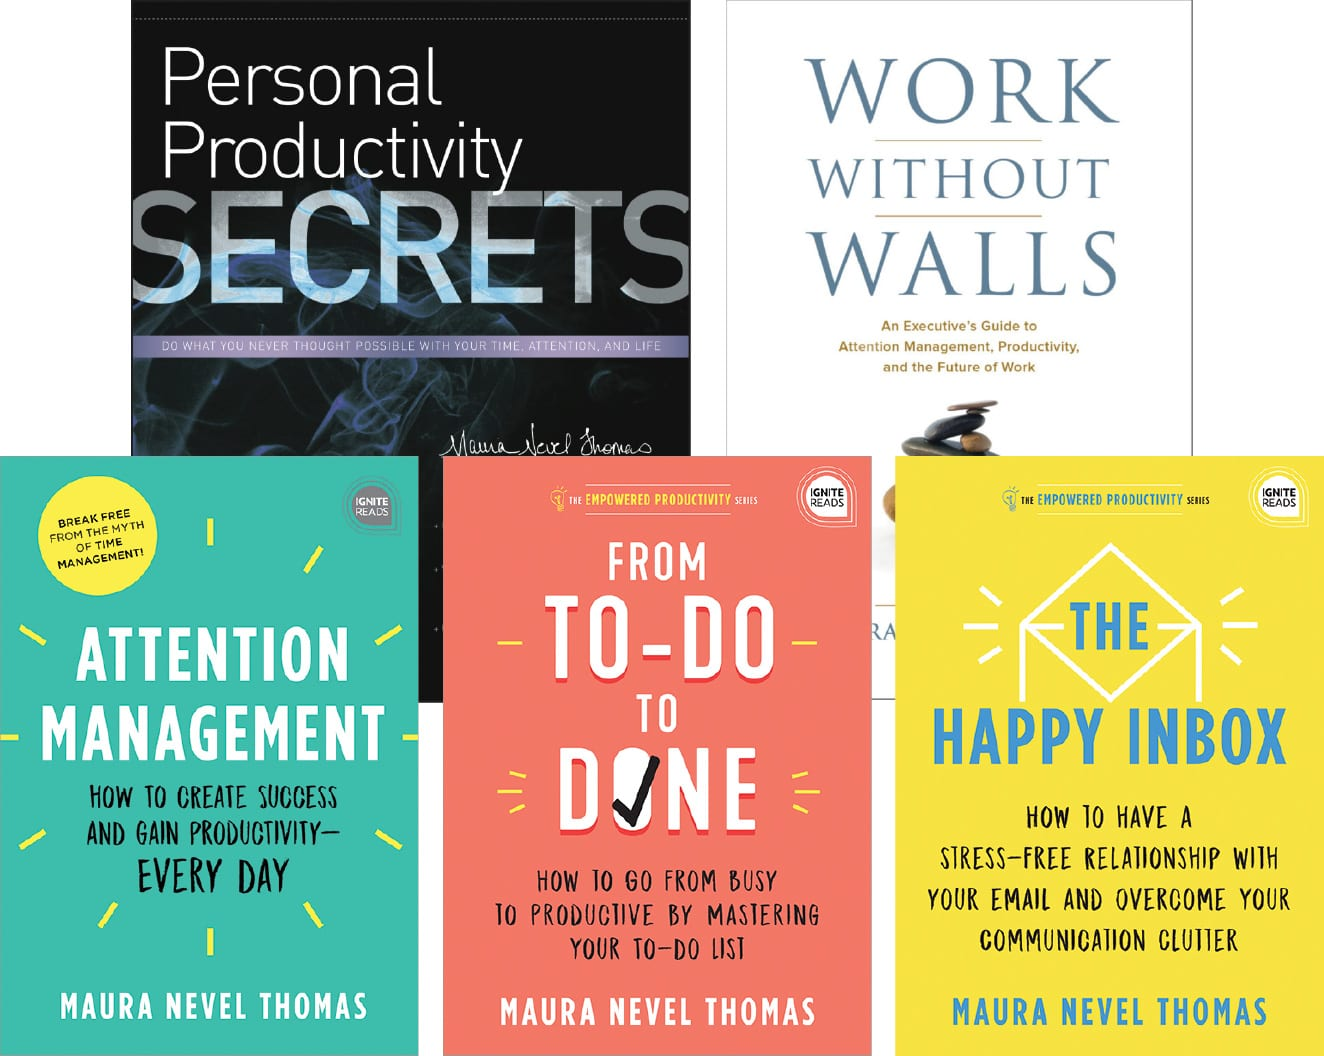 Attention Management, From To-Do to Done, and The Happy Inbox, Personal Productivity Secrets, Work Without Walls books by Maura Thomas